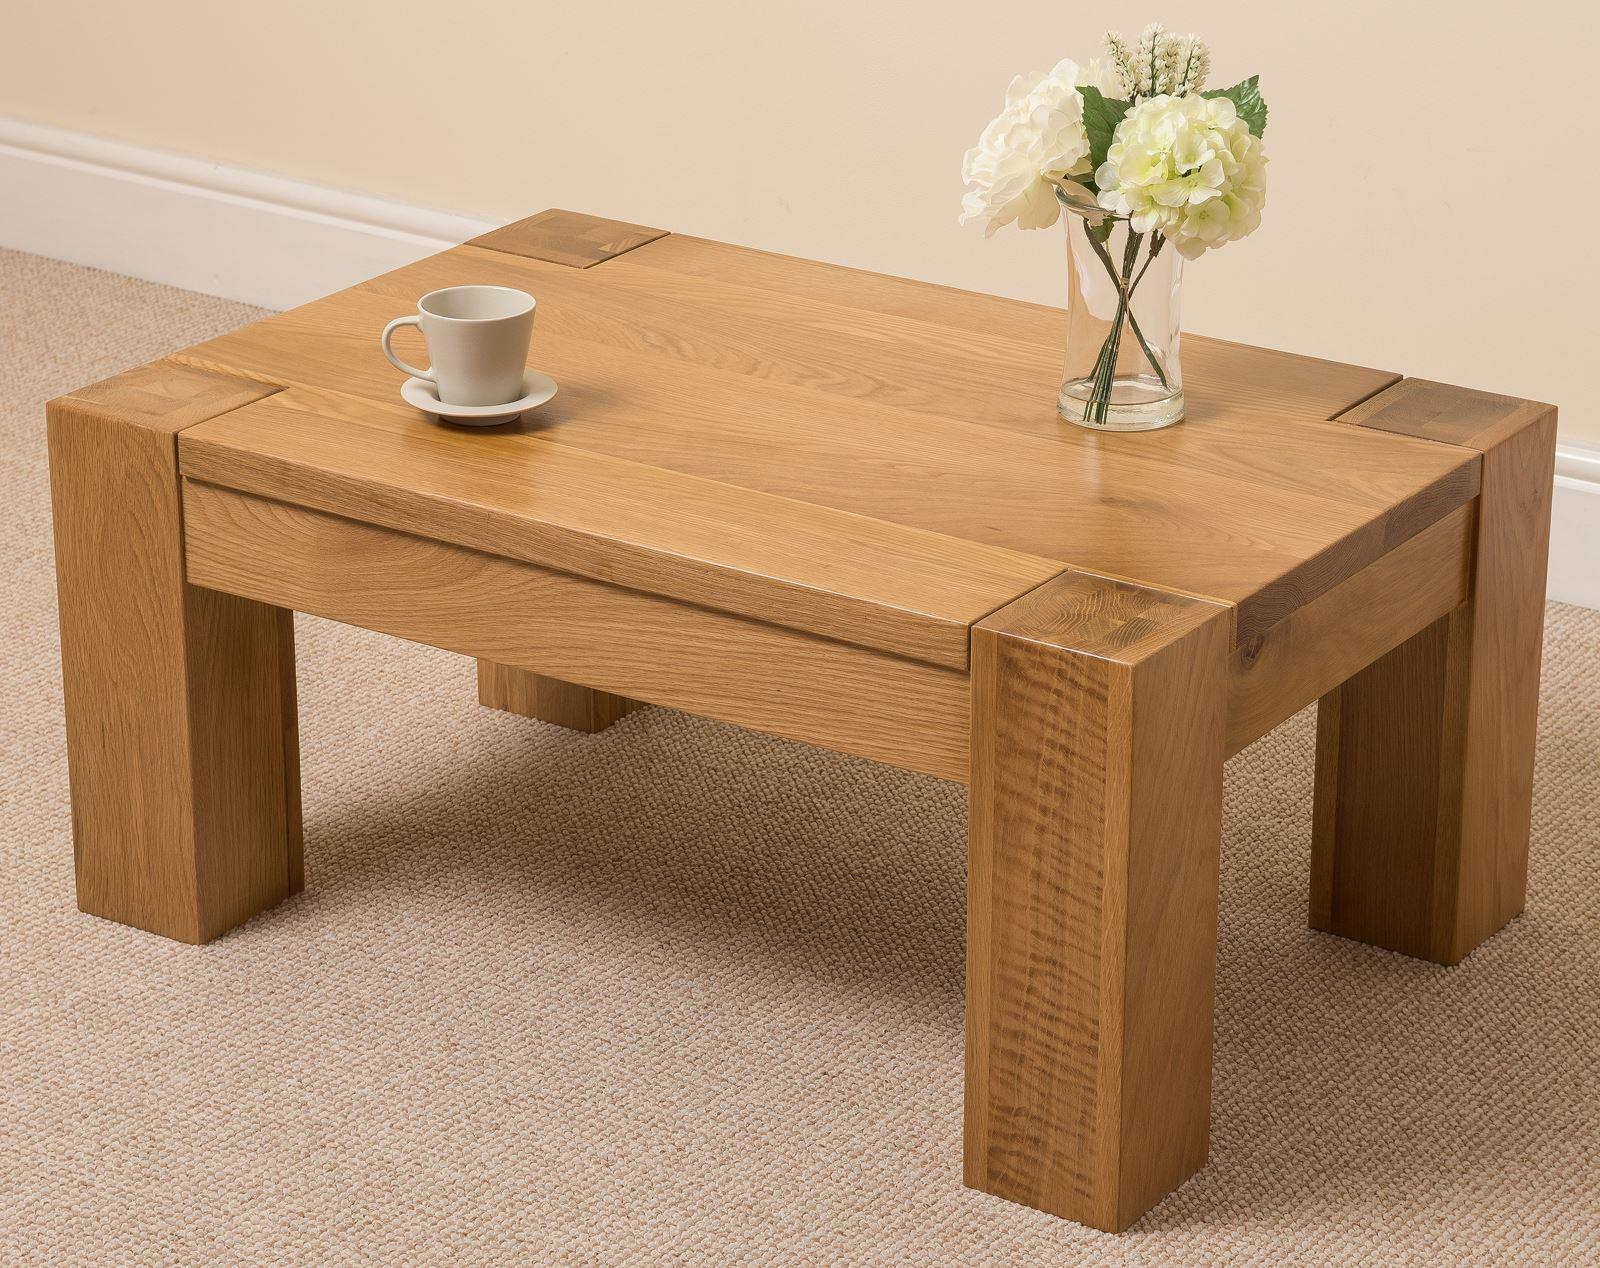 Kuba solid oak coffee table oak furniture king for Good table design